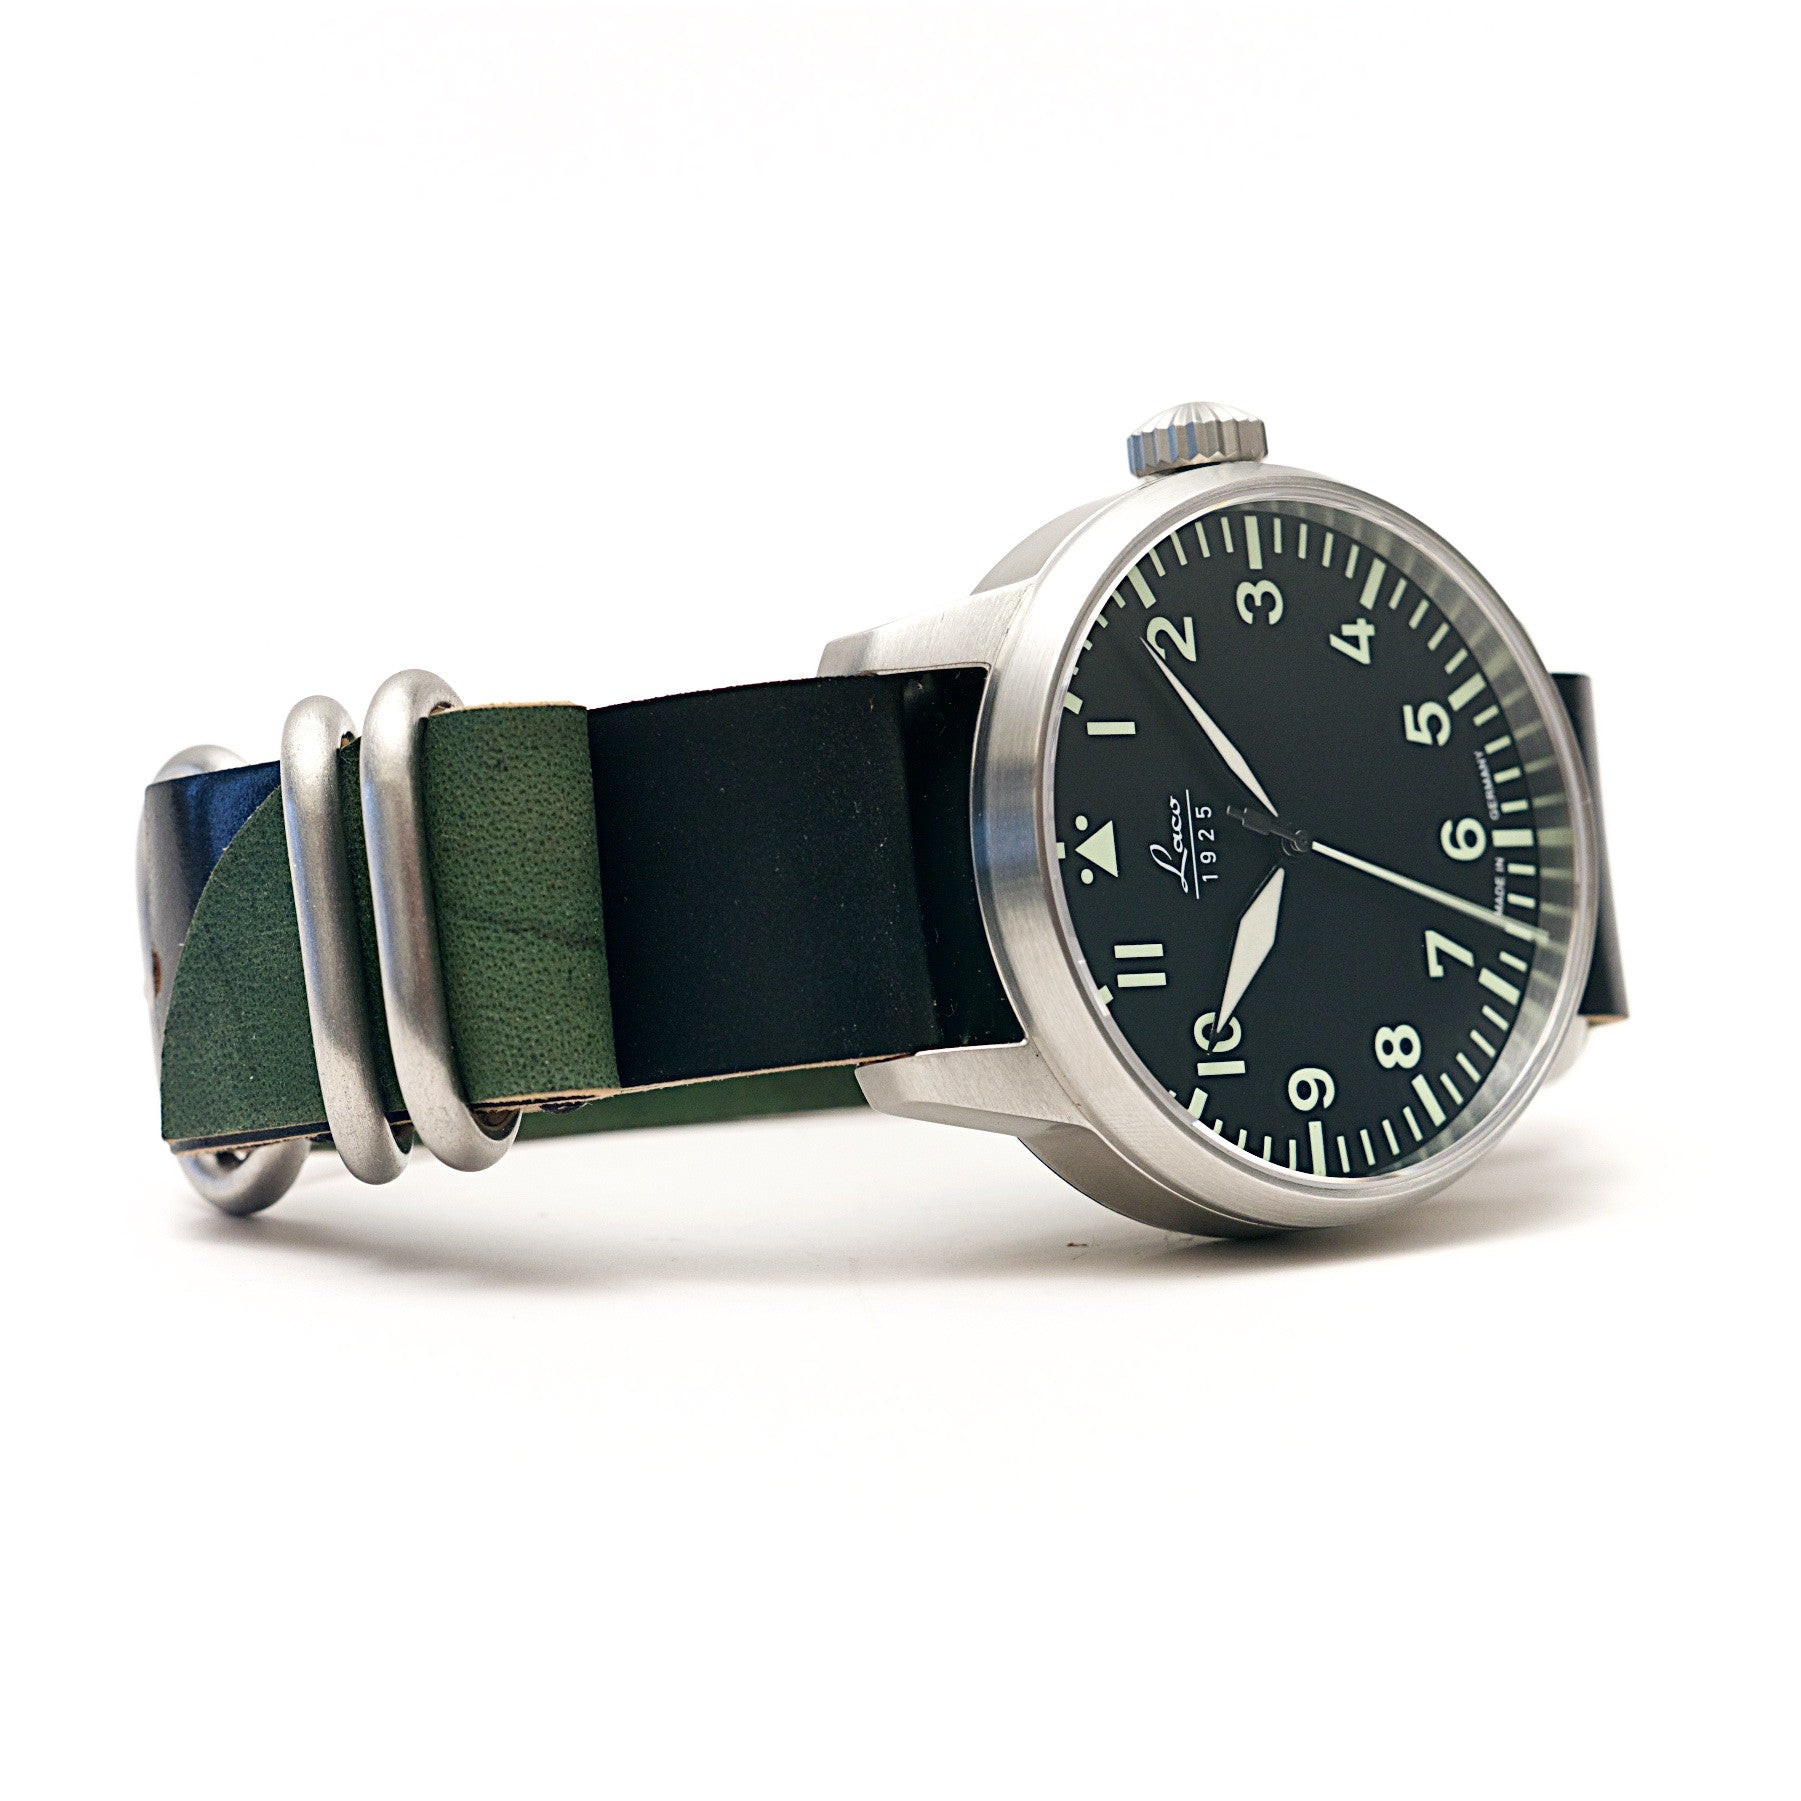 Laco Automatic 42mm Pilot Watch & Horween Shell Cordovan Strap Set